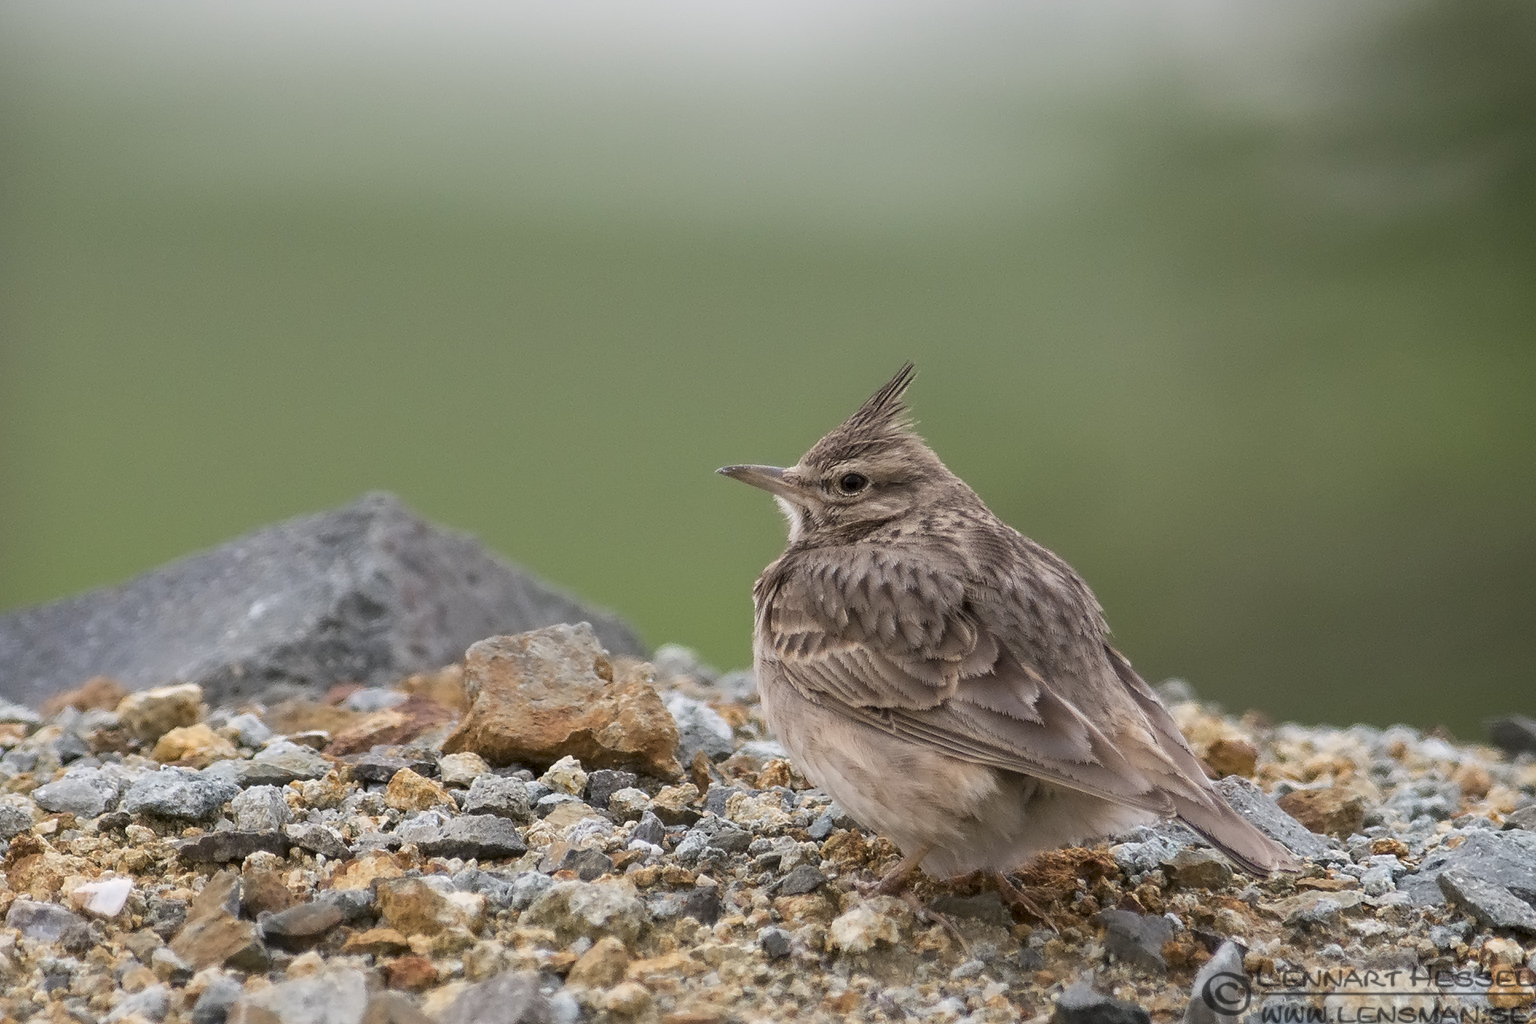 Crested Lark in Bulgaria